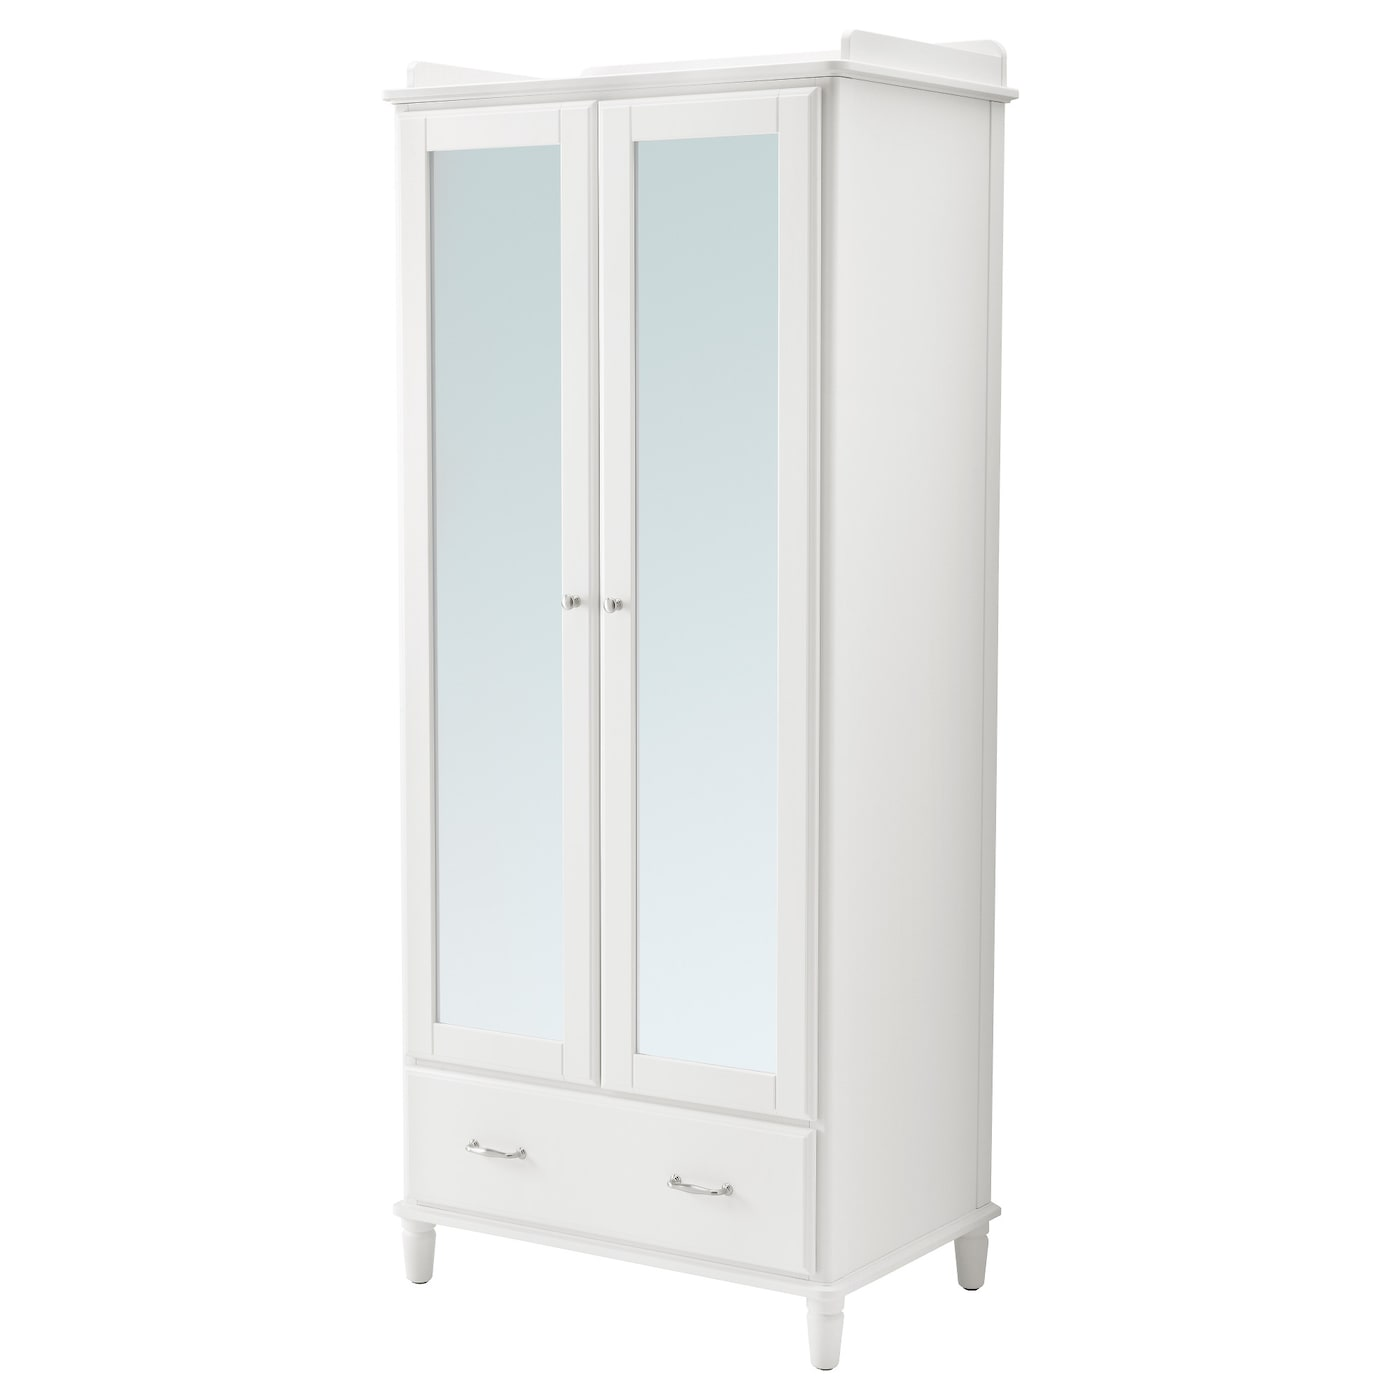 Wardrobes ikea - Ikea armoire with mirror ...